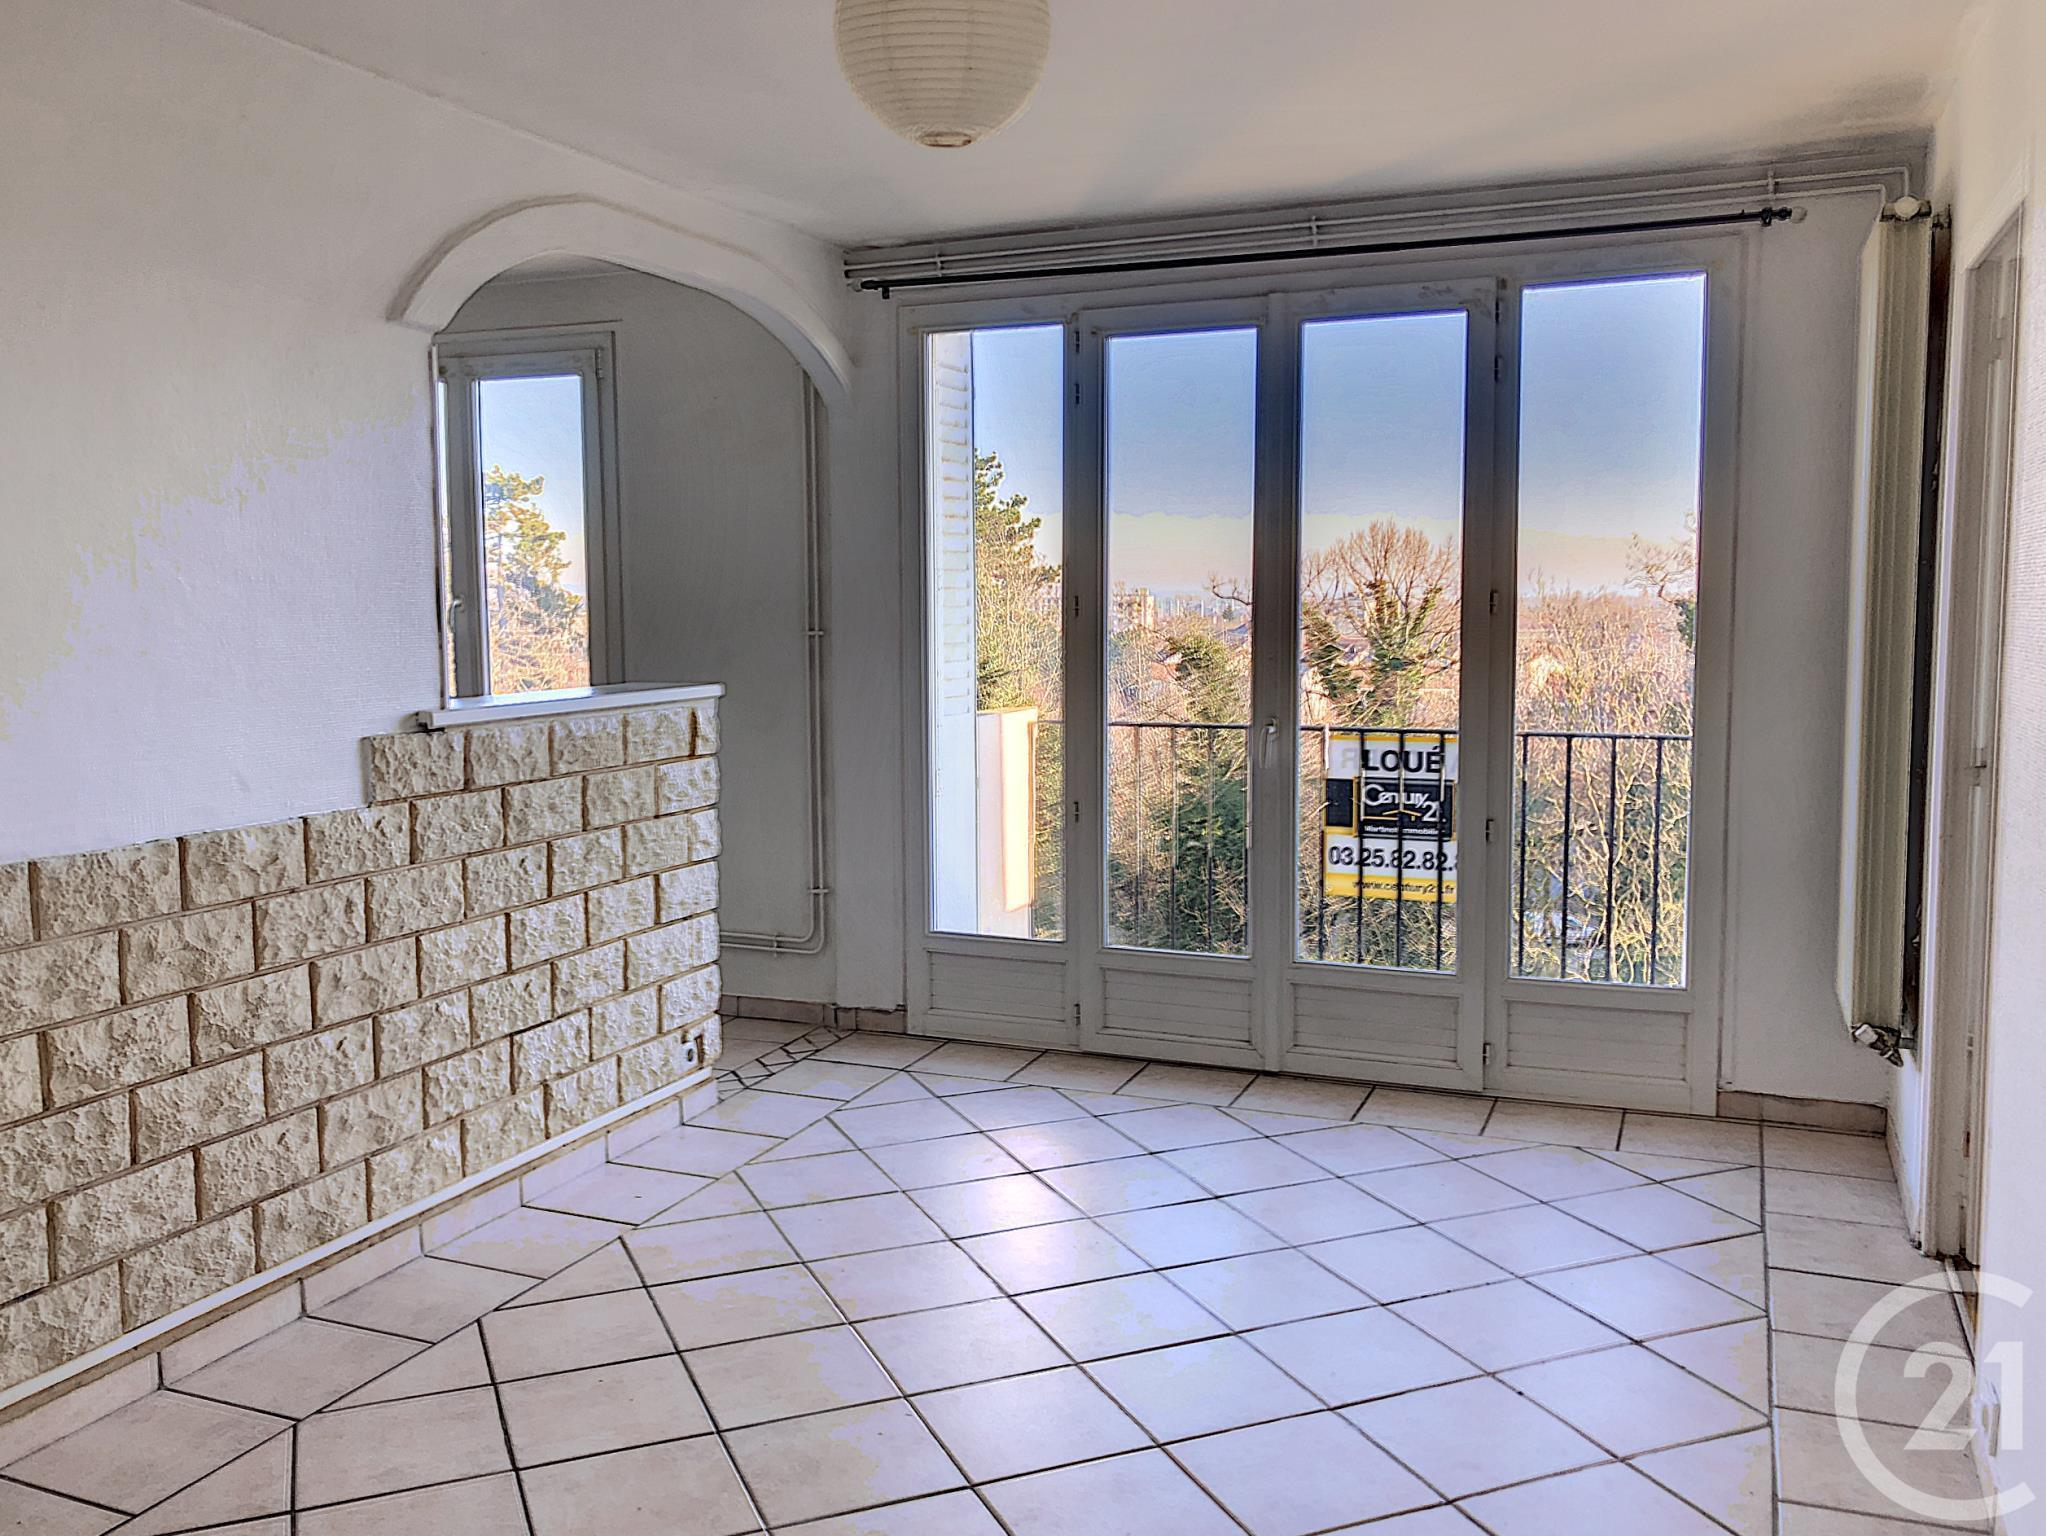 Appartement F3 à louer - 3 pièces - 53 m2 - TROYES - 10 - CHAMPAGNE-ARDENNE